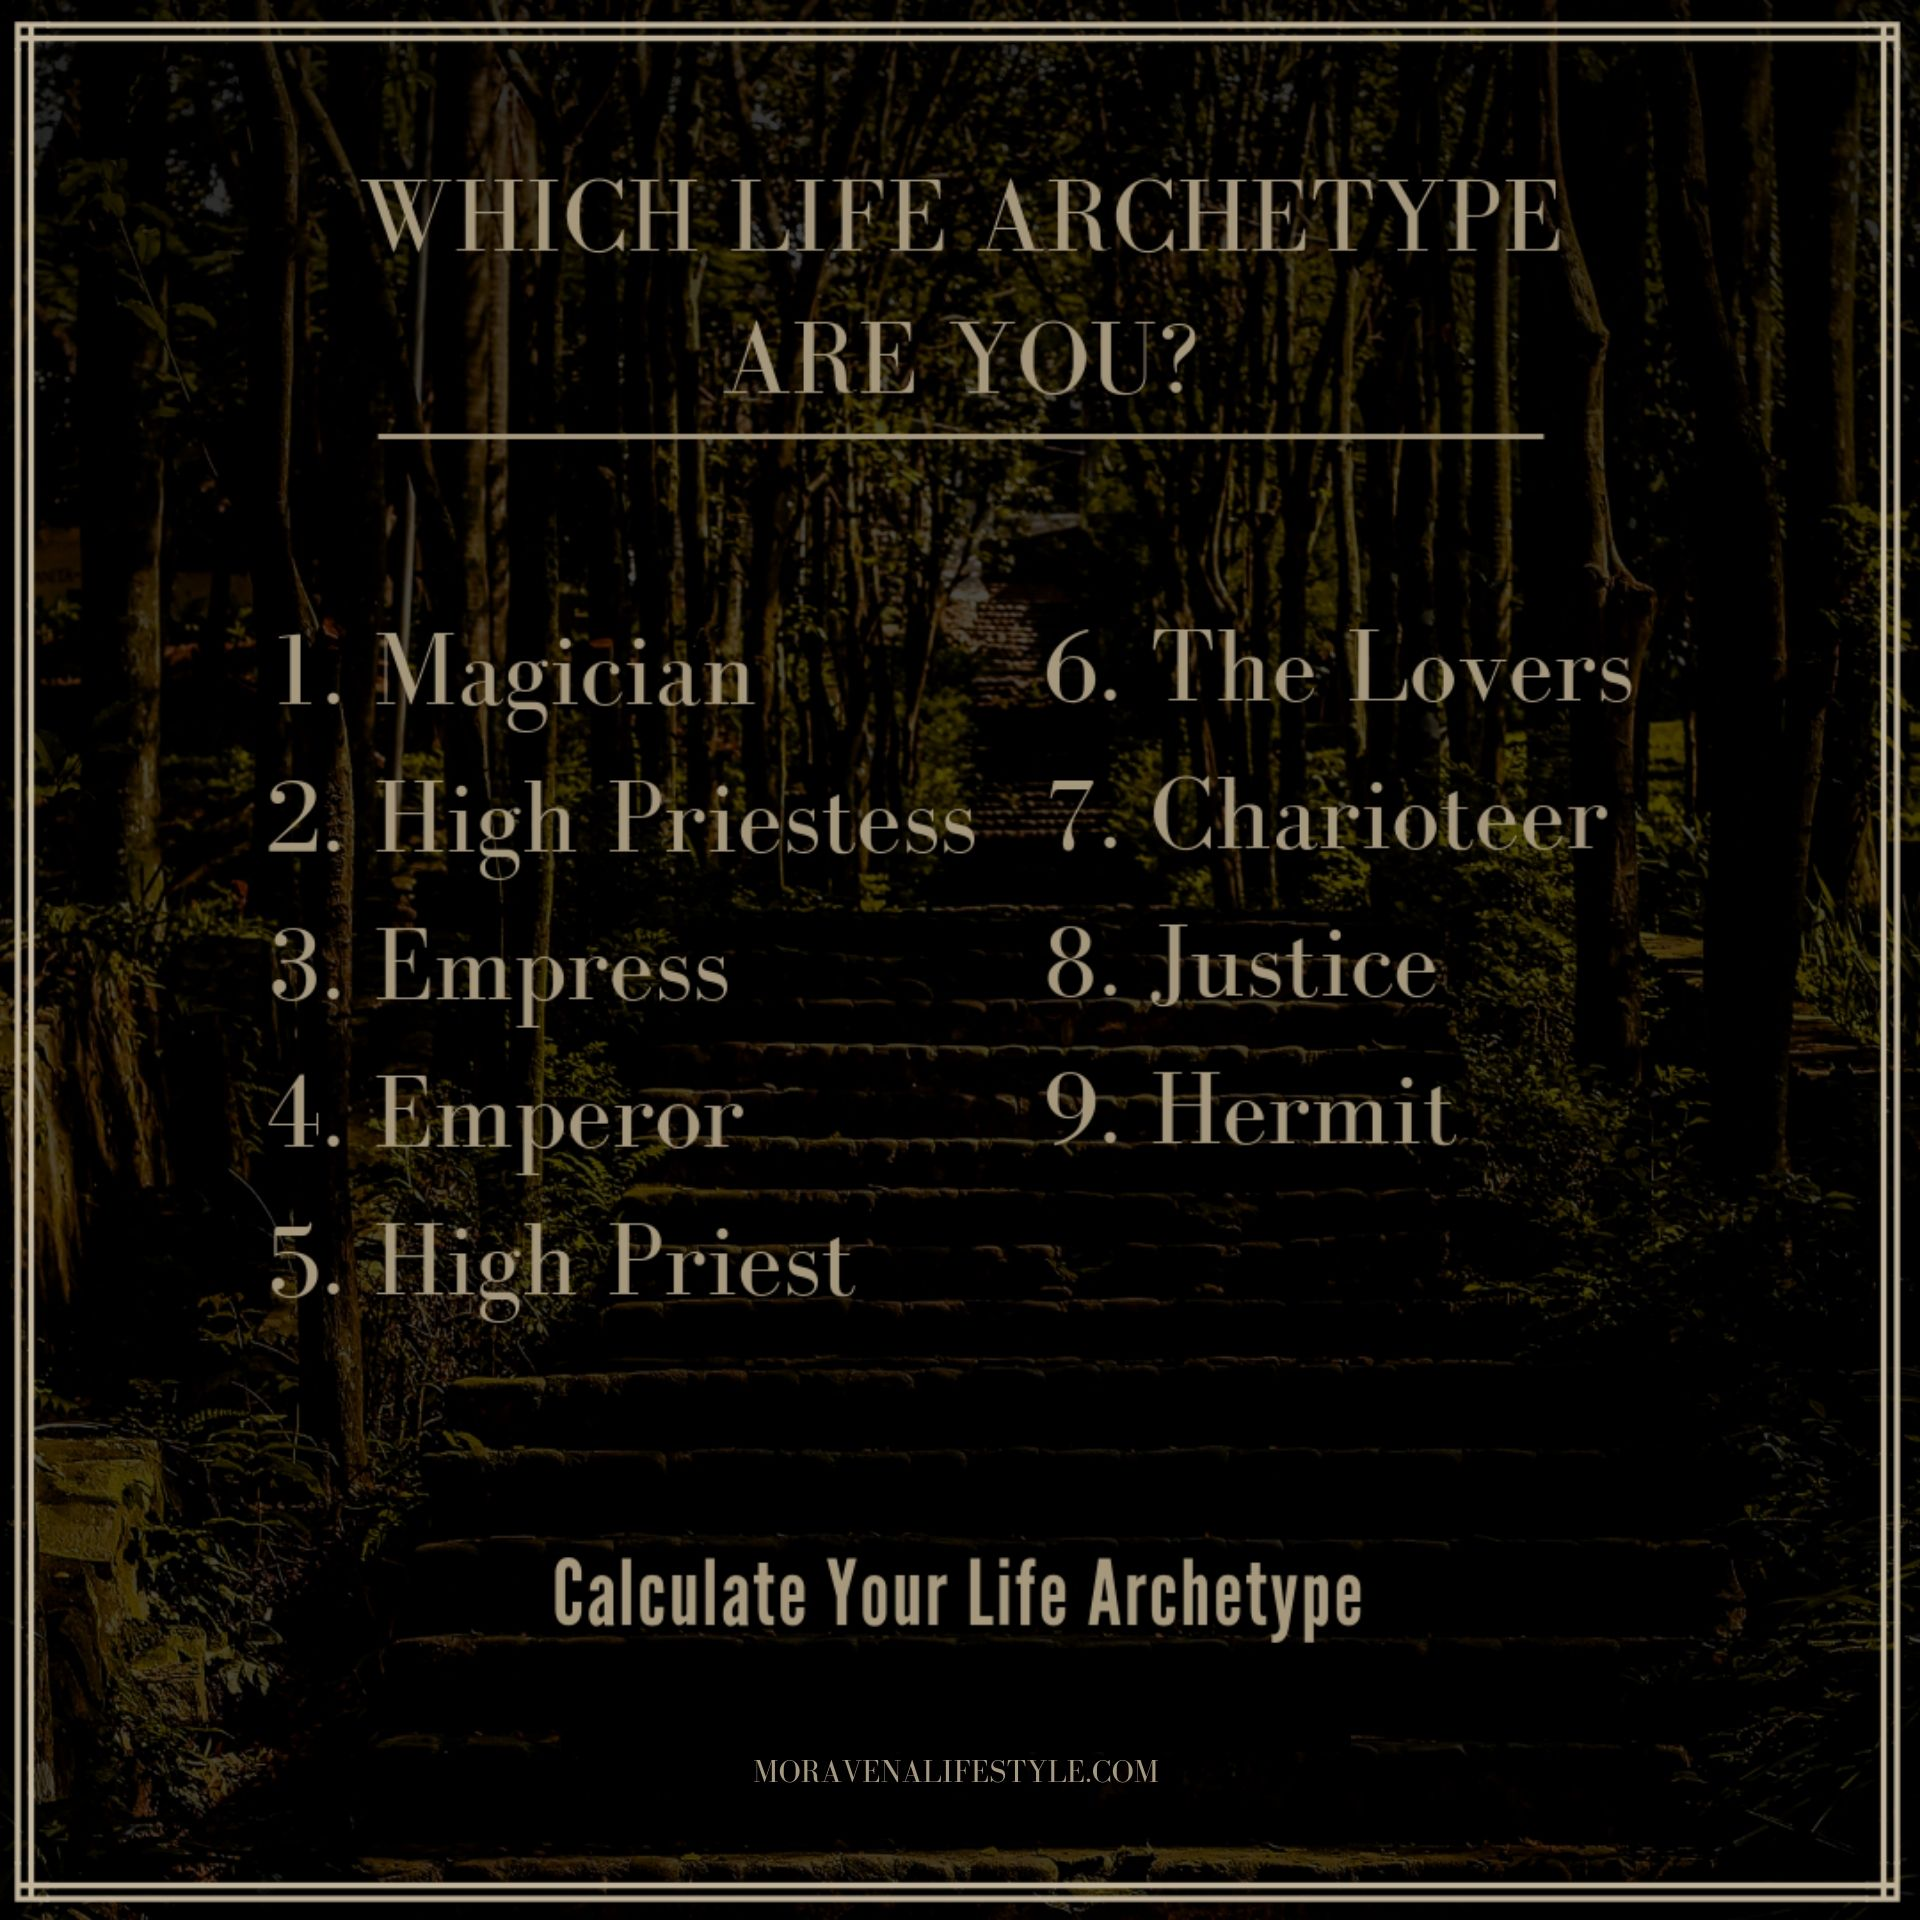 Which Life Archetype Are You? / MORAVENALIFESTYLE.COM.jpg